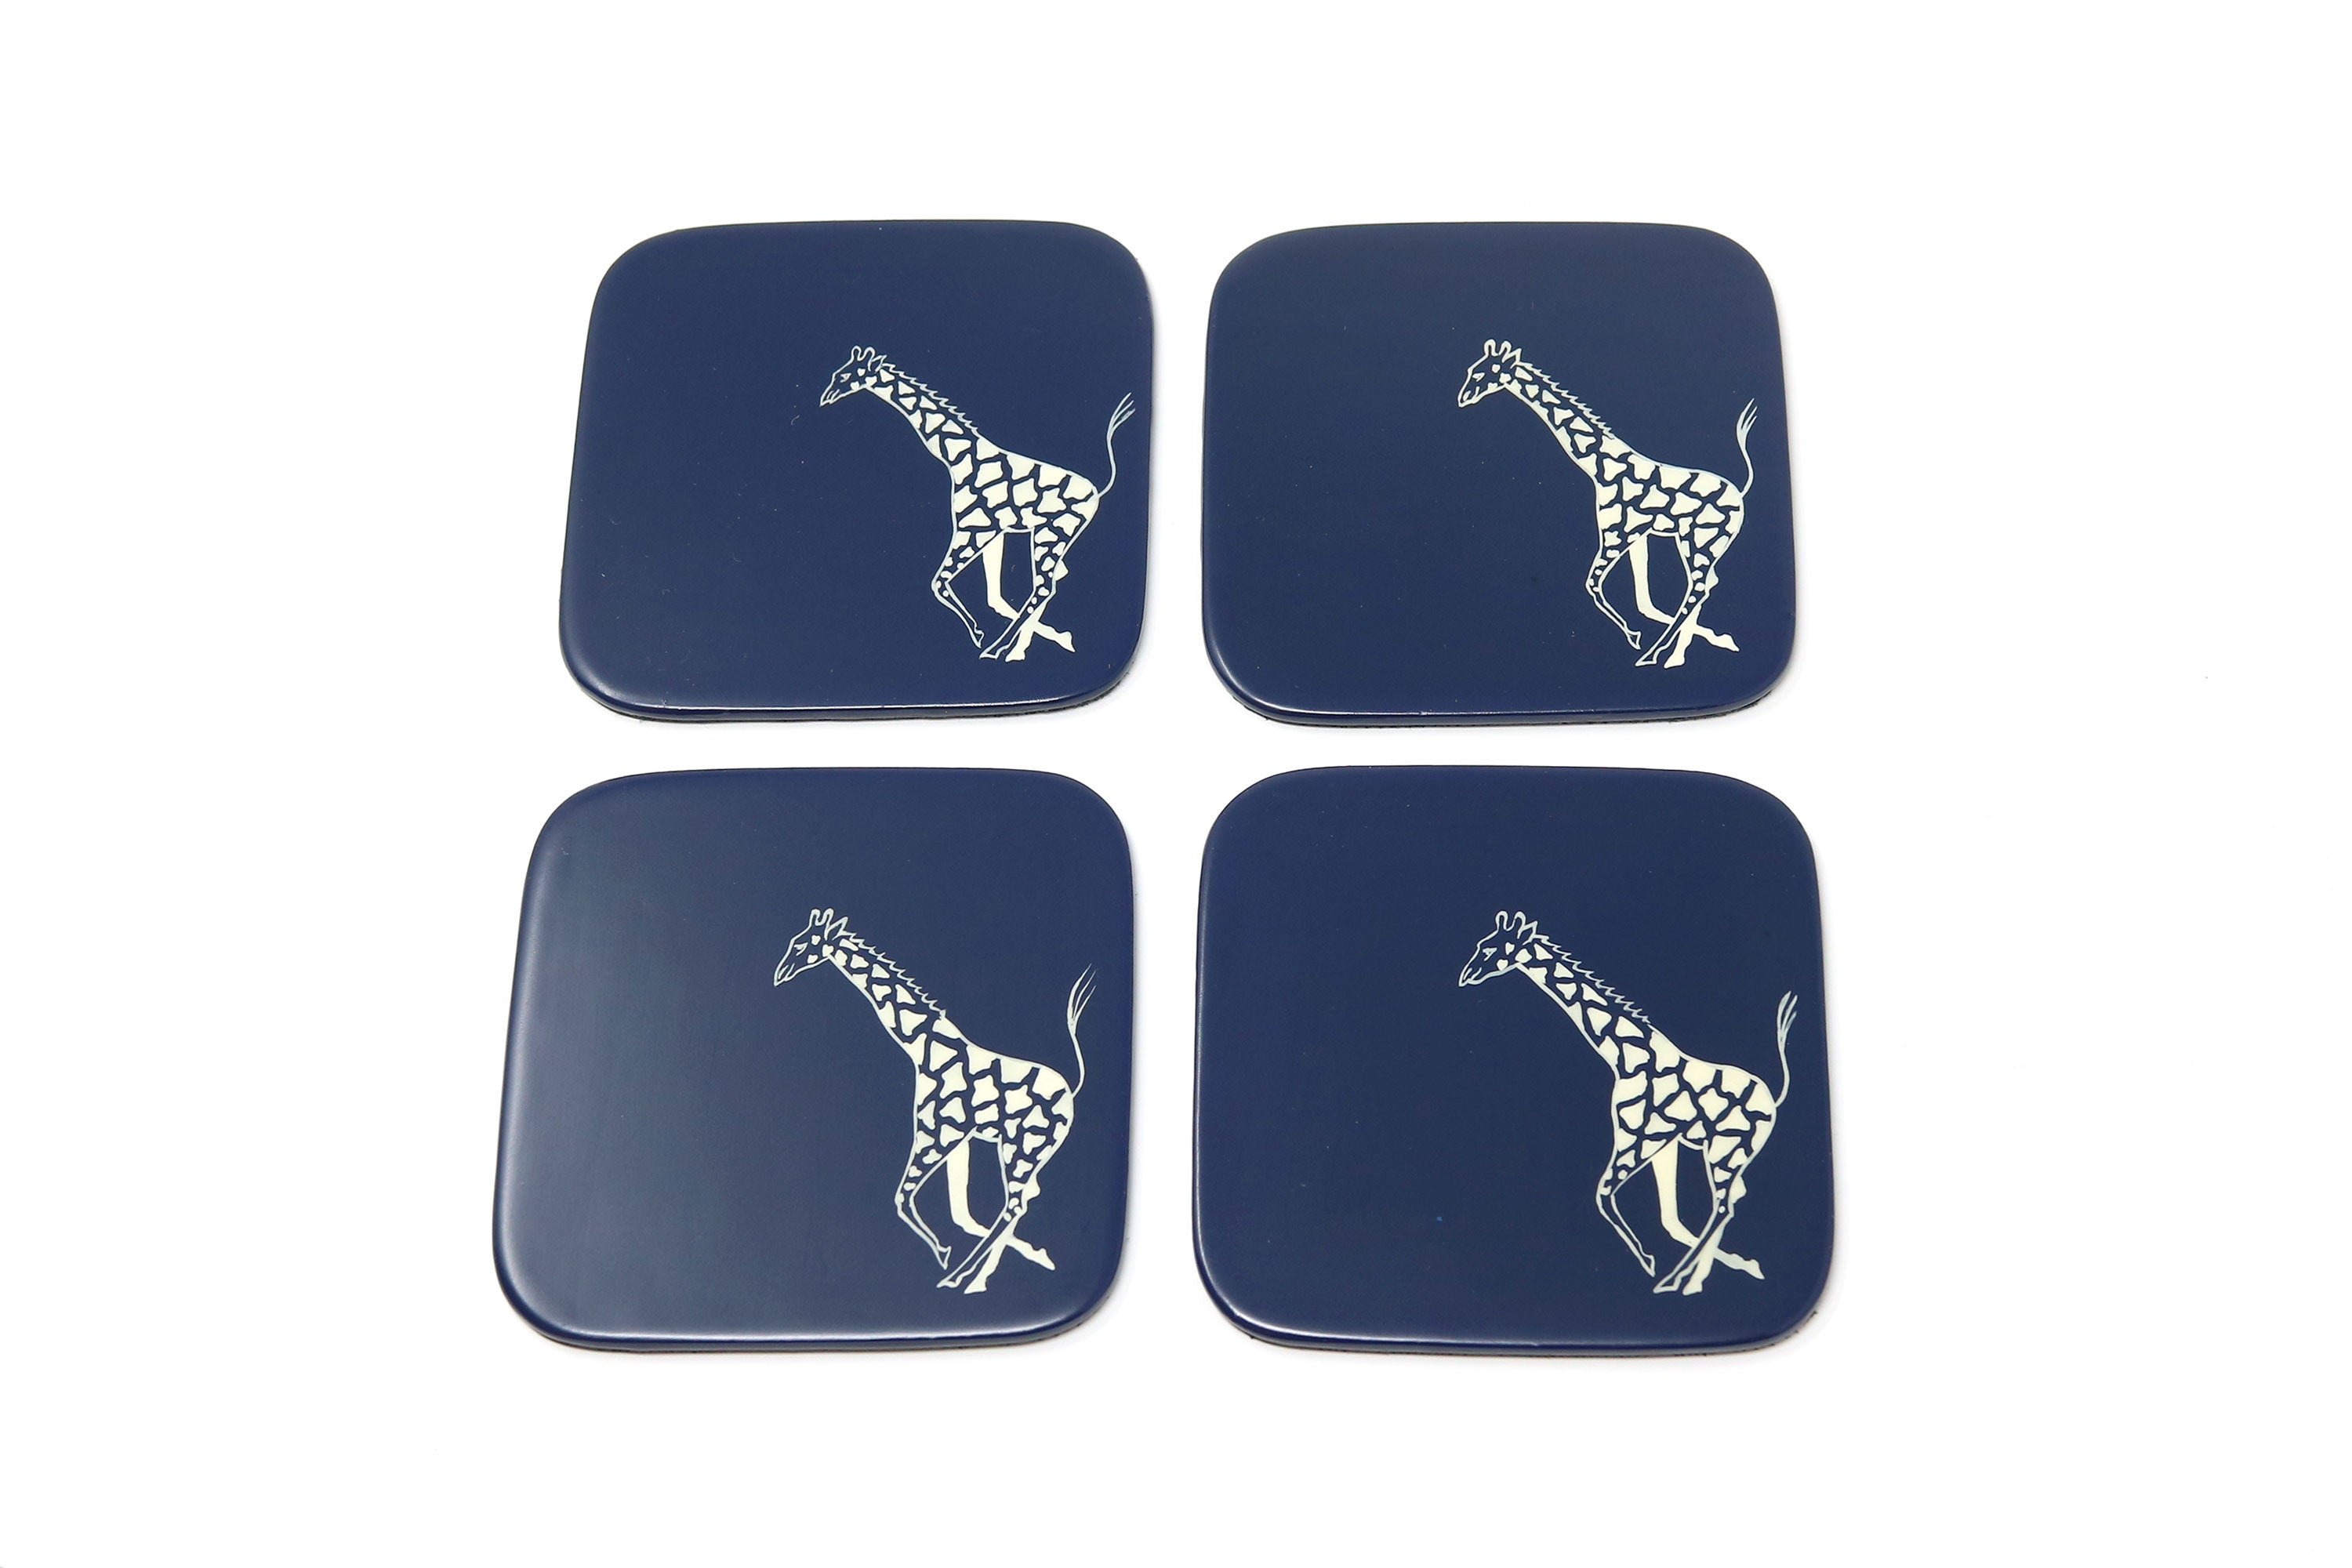 Coasters, Running Giraffes on Royal Blue, Set of 4 - ASSiA